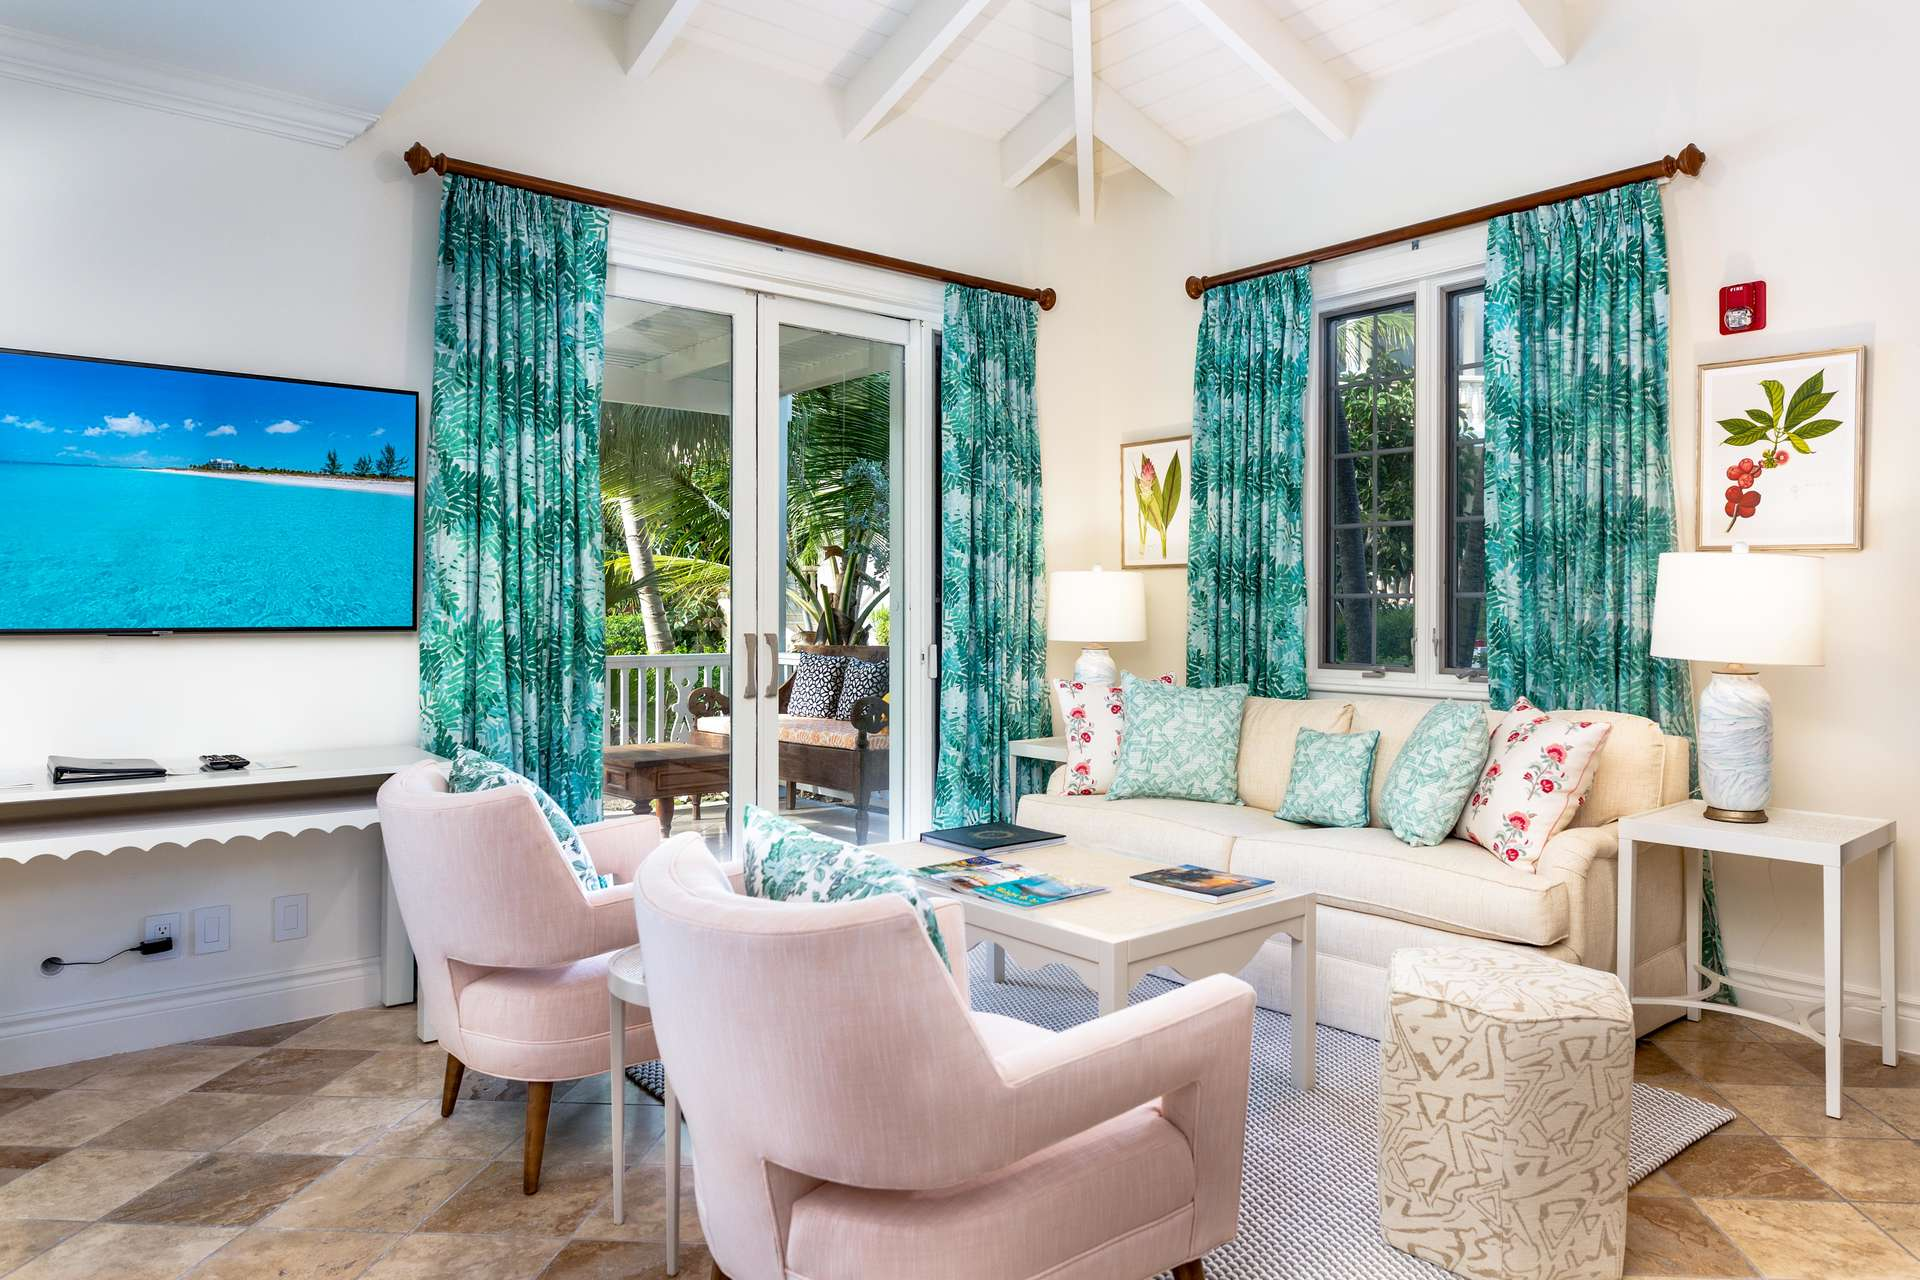 Luxury villa rentals caribbean - Turks and caicos - Providenciales - Point graceresort - Pool View Cottage | 1 Bedroom - Image 1/6